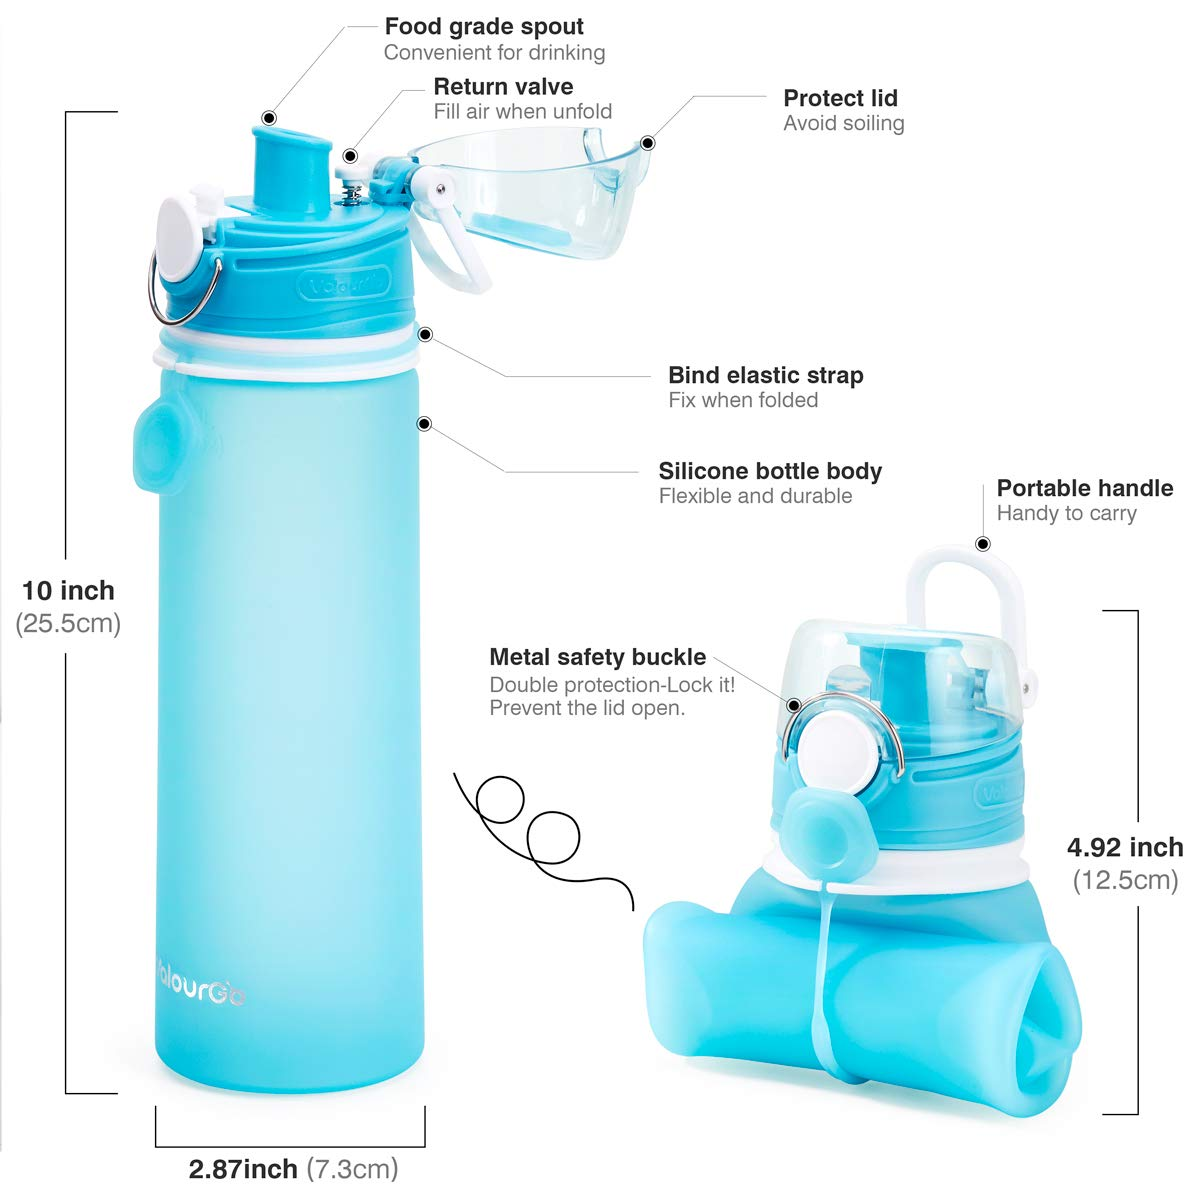 Valourgo Collapsible Sports Water Bottle Leak Proof Roll up BPA Free Silicone Water Bottle for Travel and Outdoor 21 oz